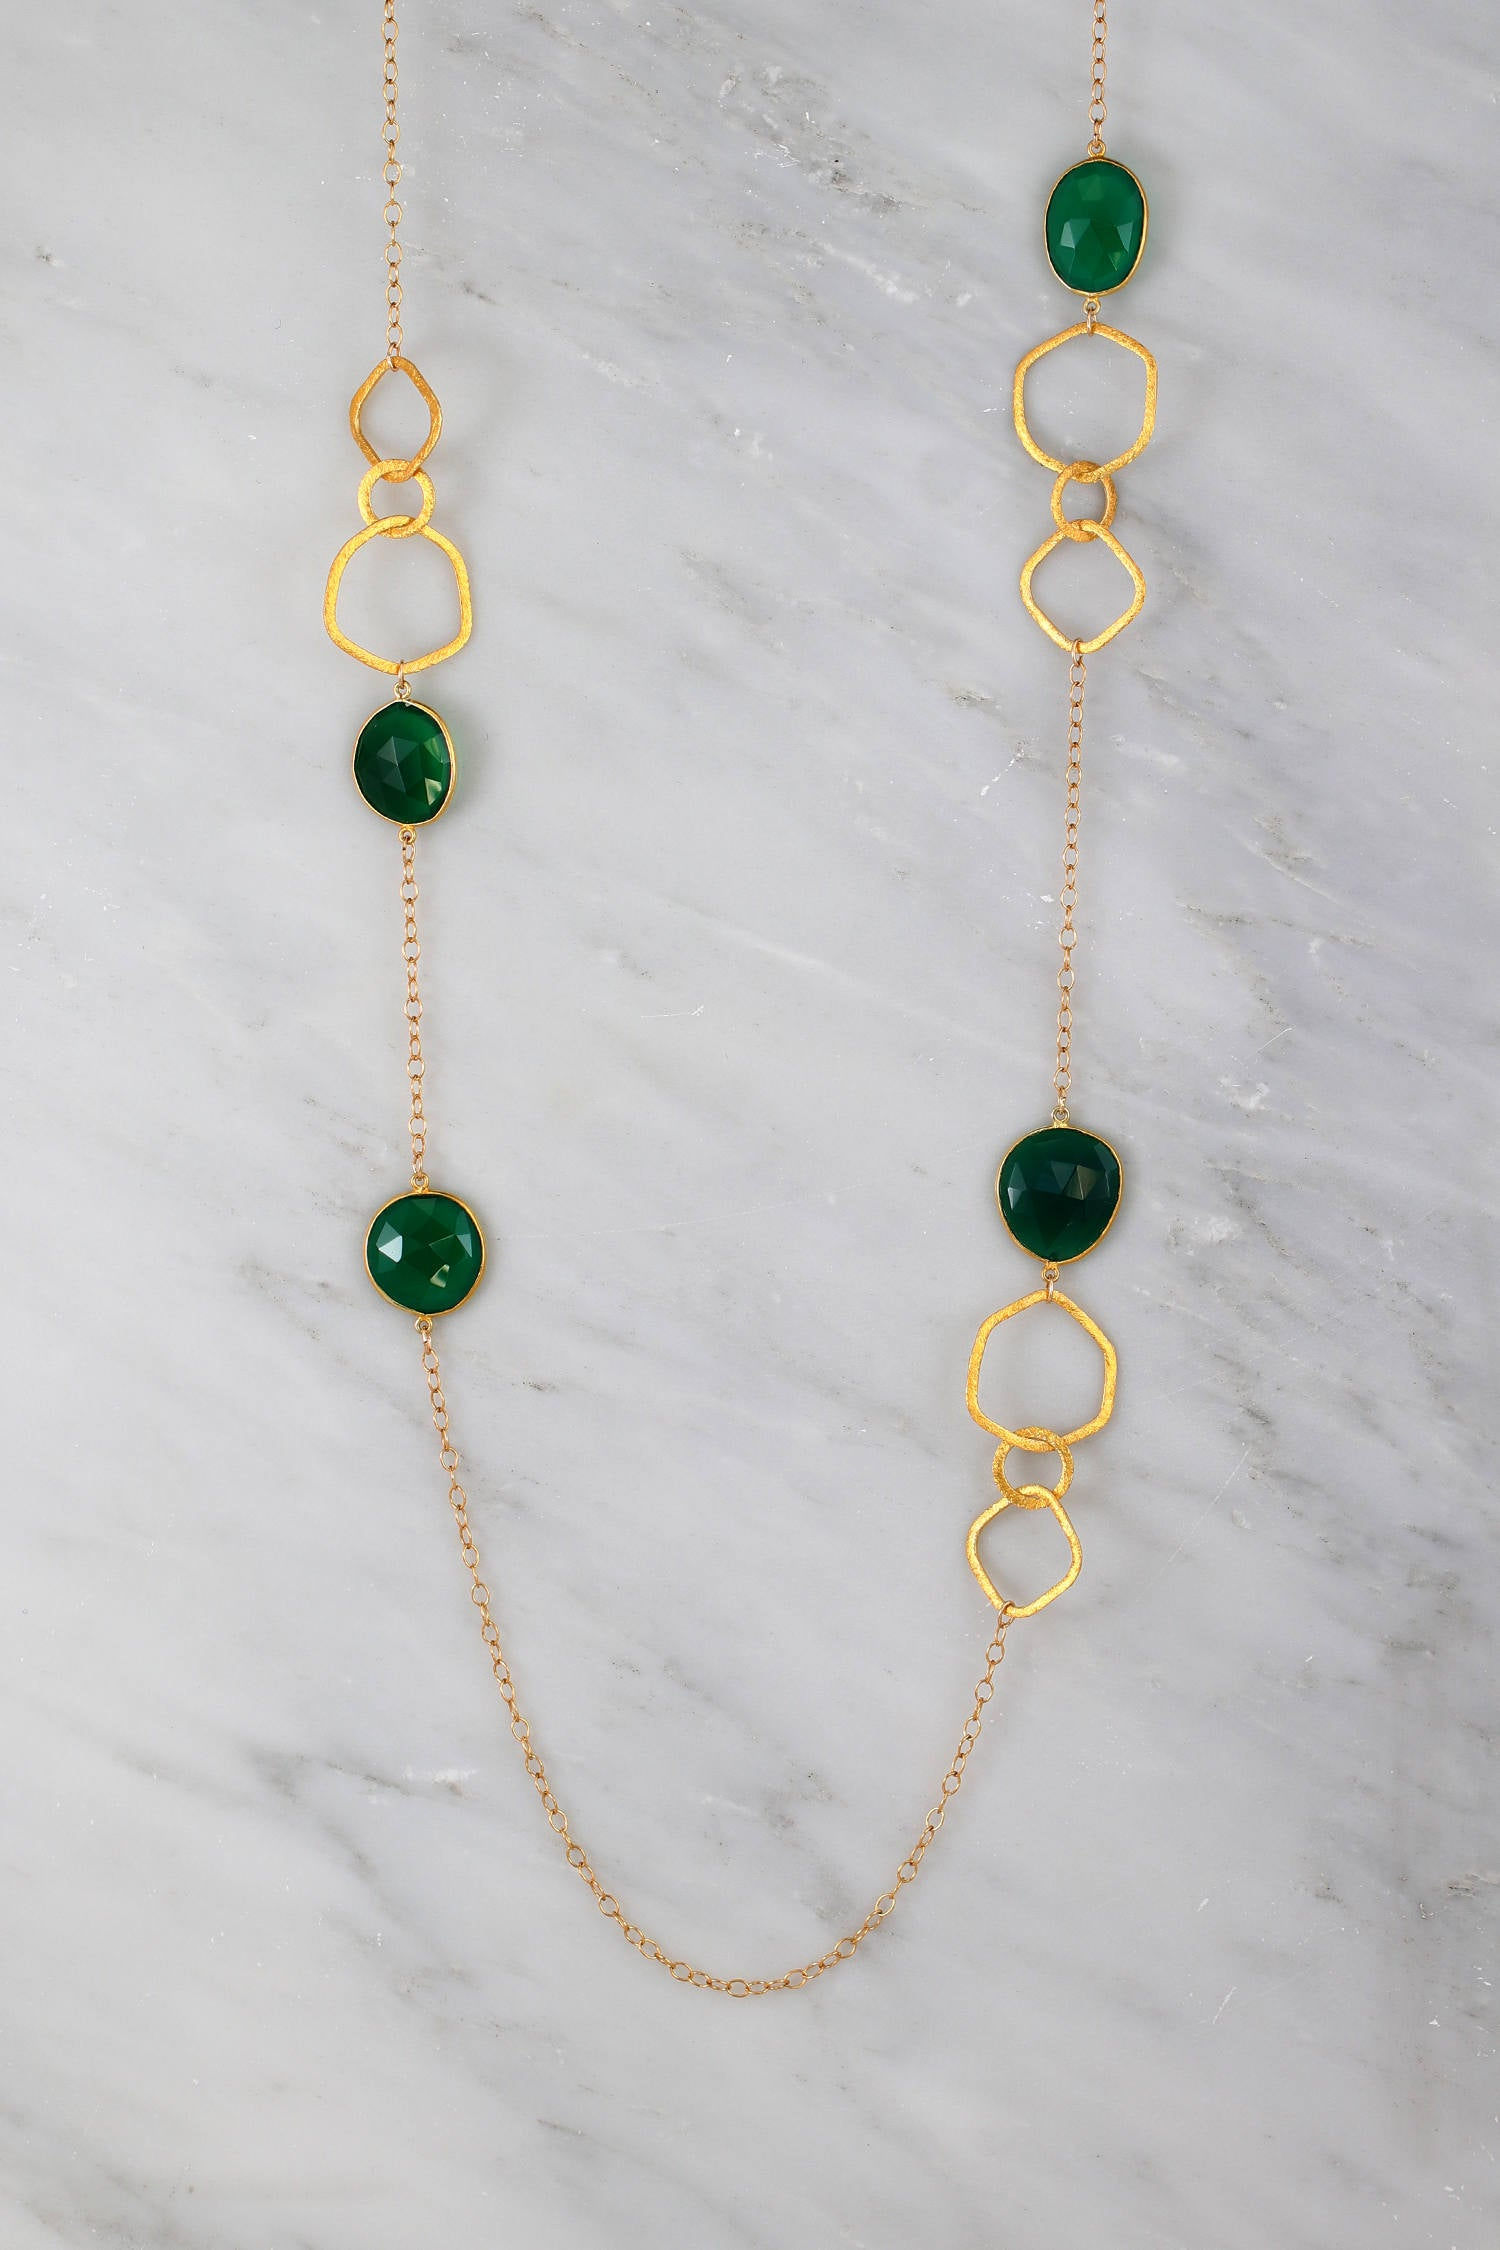 Designers Necklace Green Emerald Gemstone Necklace, Station Long Bezel Set Necklace, Green Onyx Gold Necklace, Long Layered Necklace